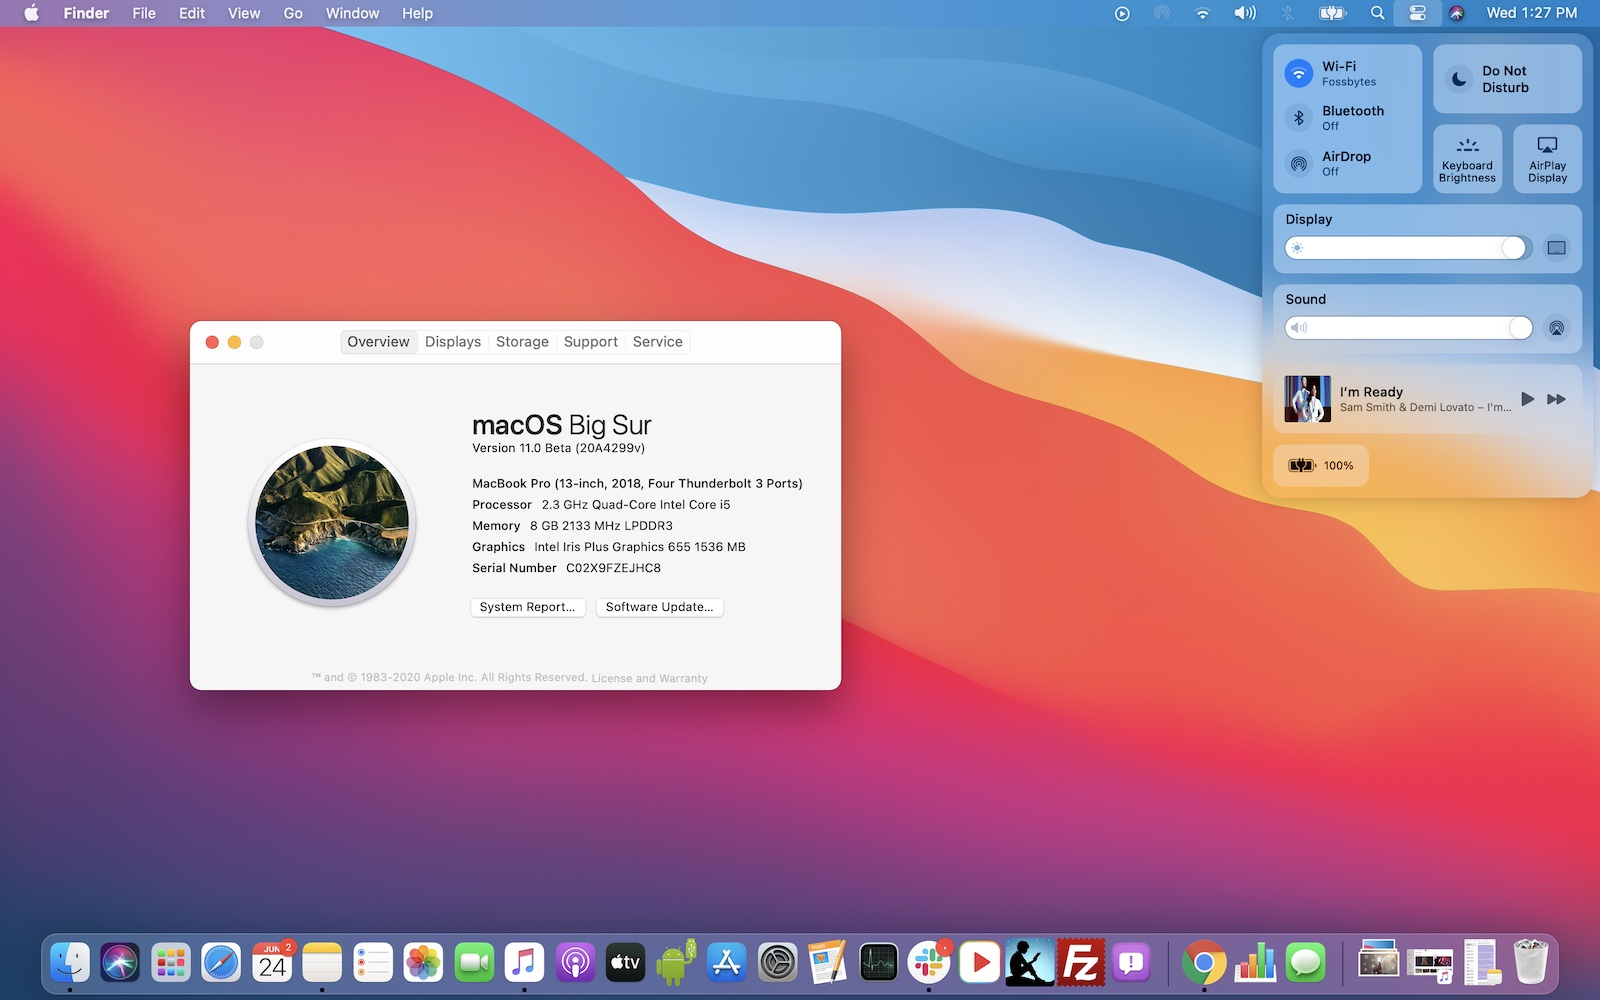 Apple macOS 'Big Sur' Theme Is Getting Ready For Linux Desktops